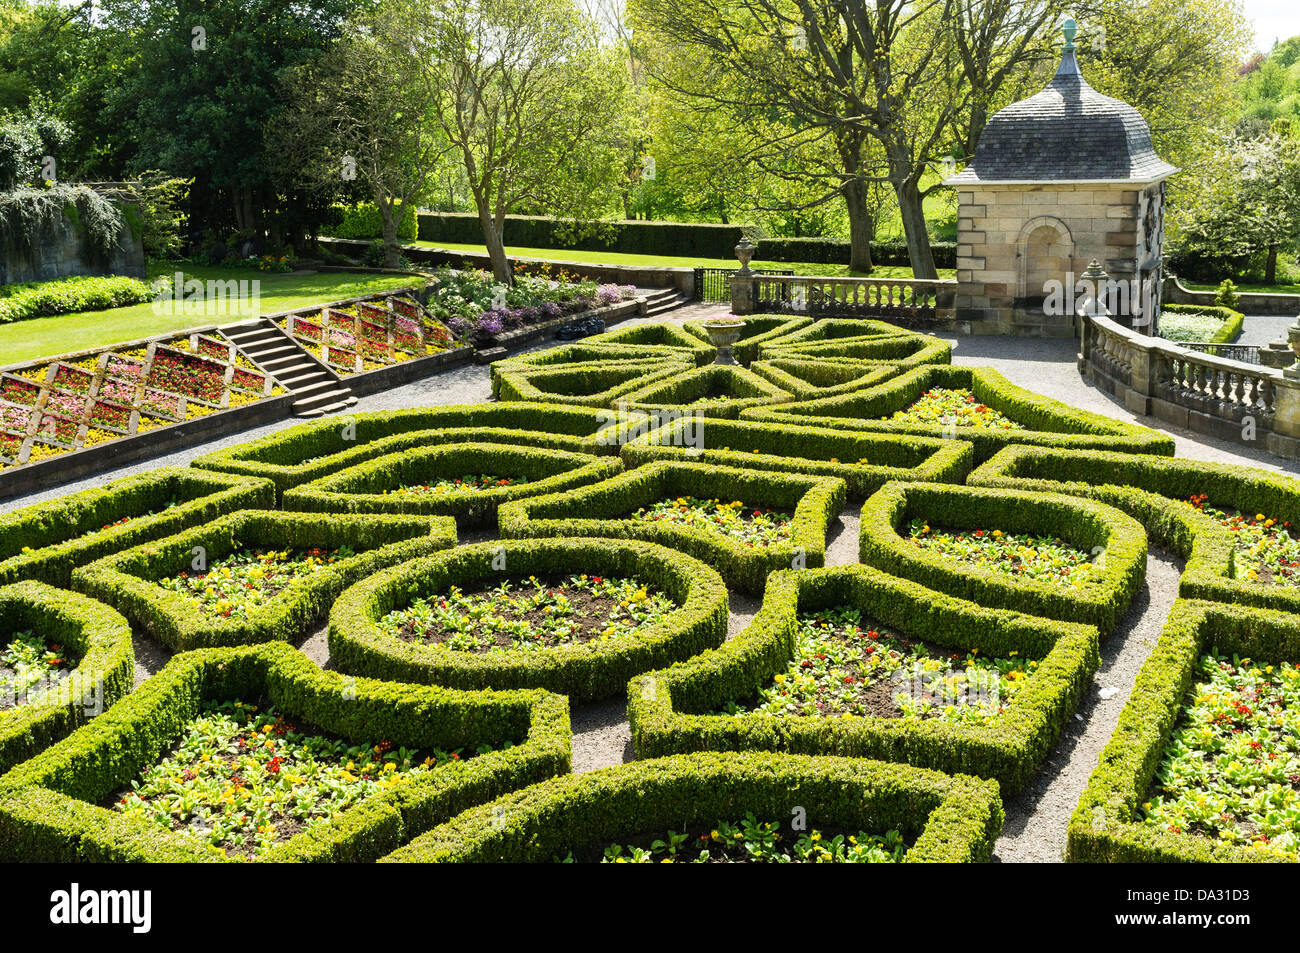 Topiary hedges in the garden of Pollok House, Glasgow, Scotland. - Stock Image